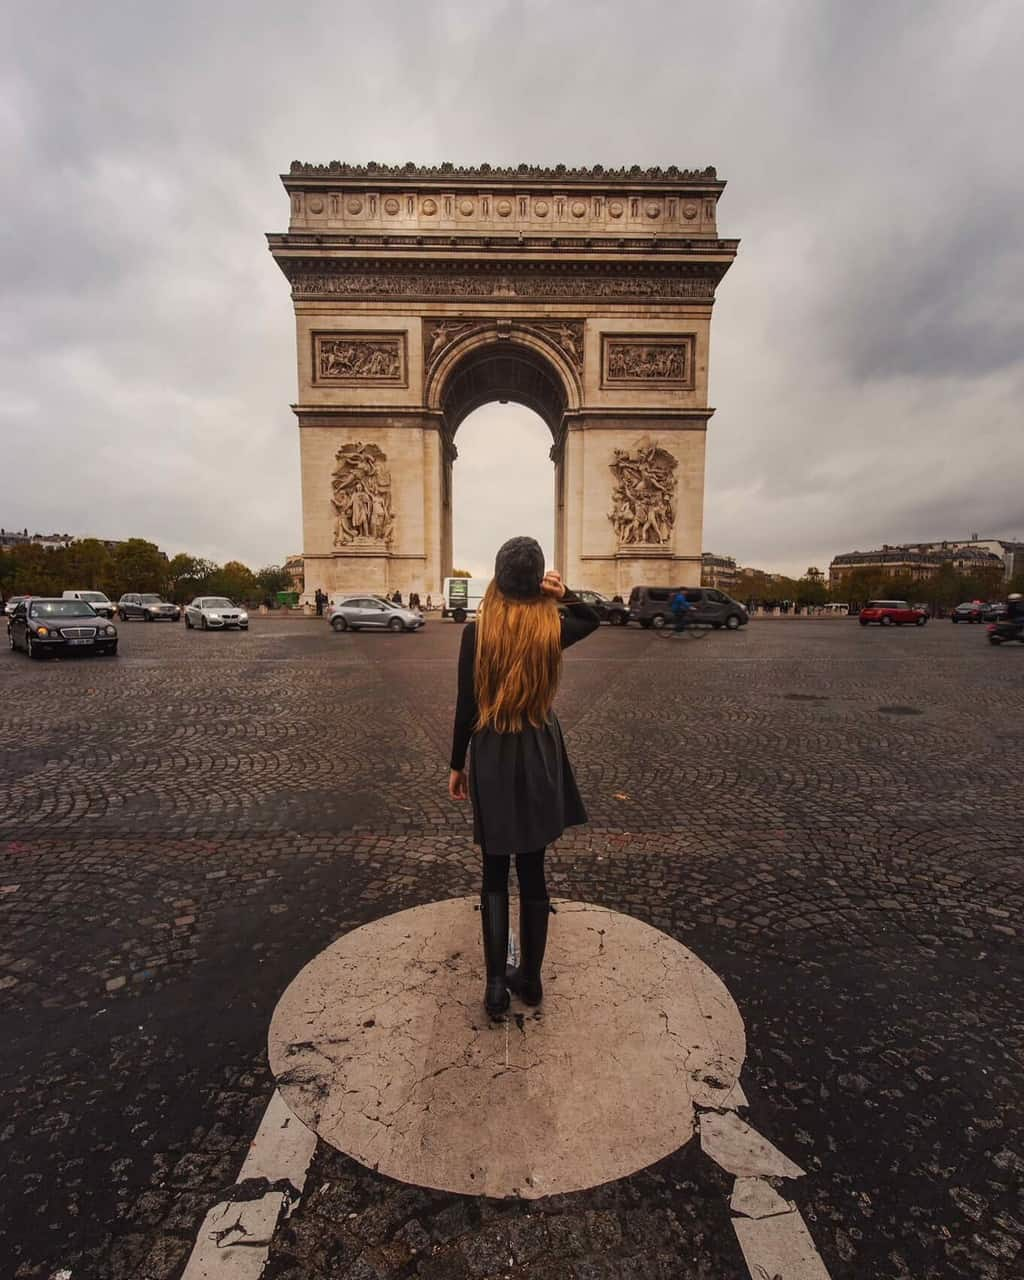 photographing the arc de triumph in paris | paris travel tips